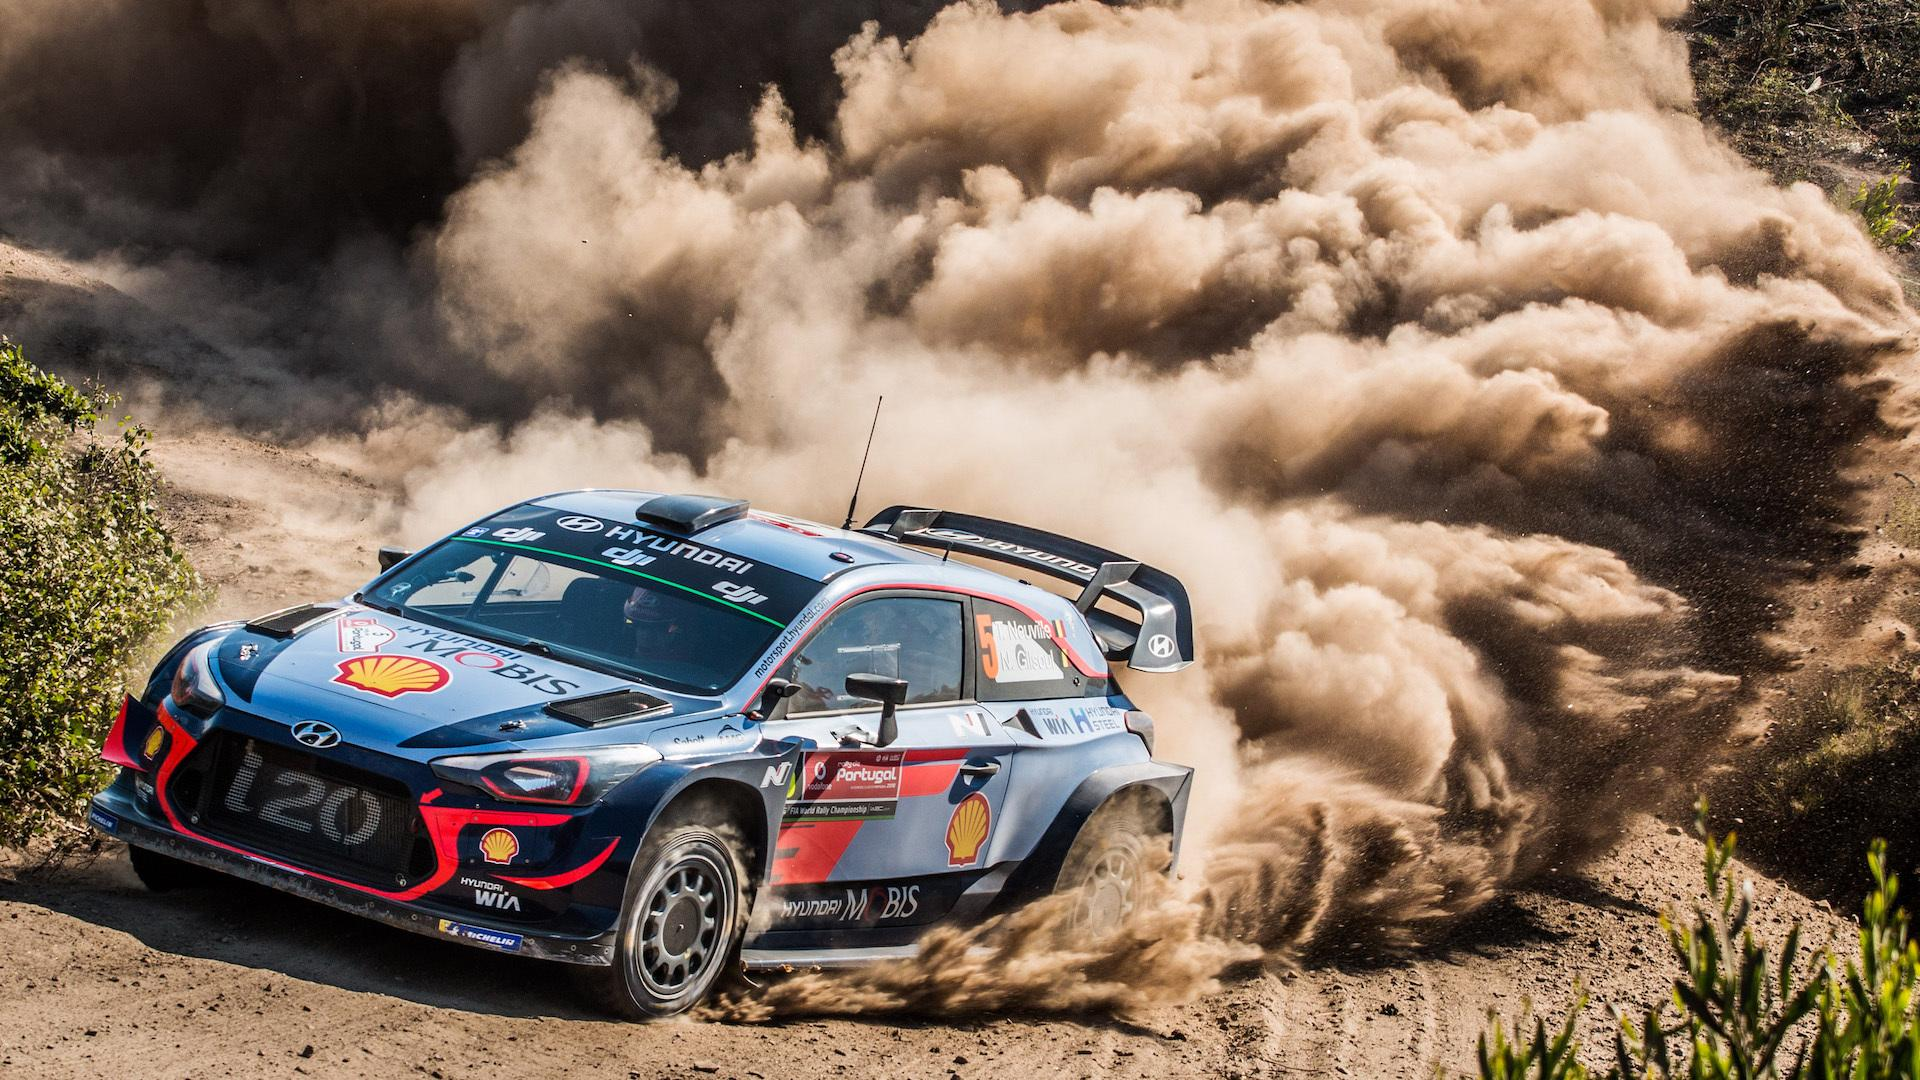 You will need to sweat quite a bit before you learn how to drive this rally-specced Hyundai i20 WRC, but once you do, darting to 100 km/h (62 mph) will be a matter of a couple seconds.